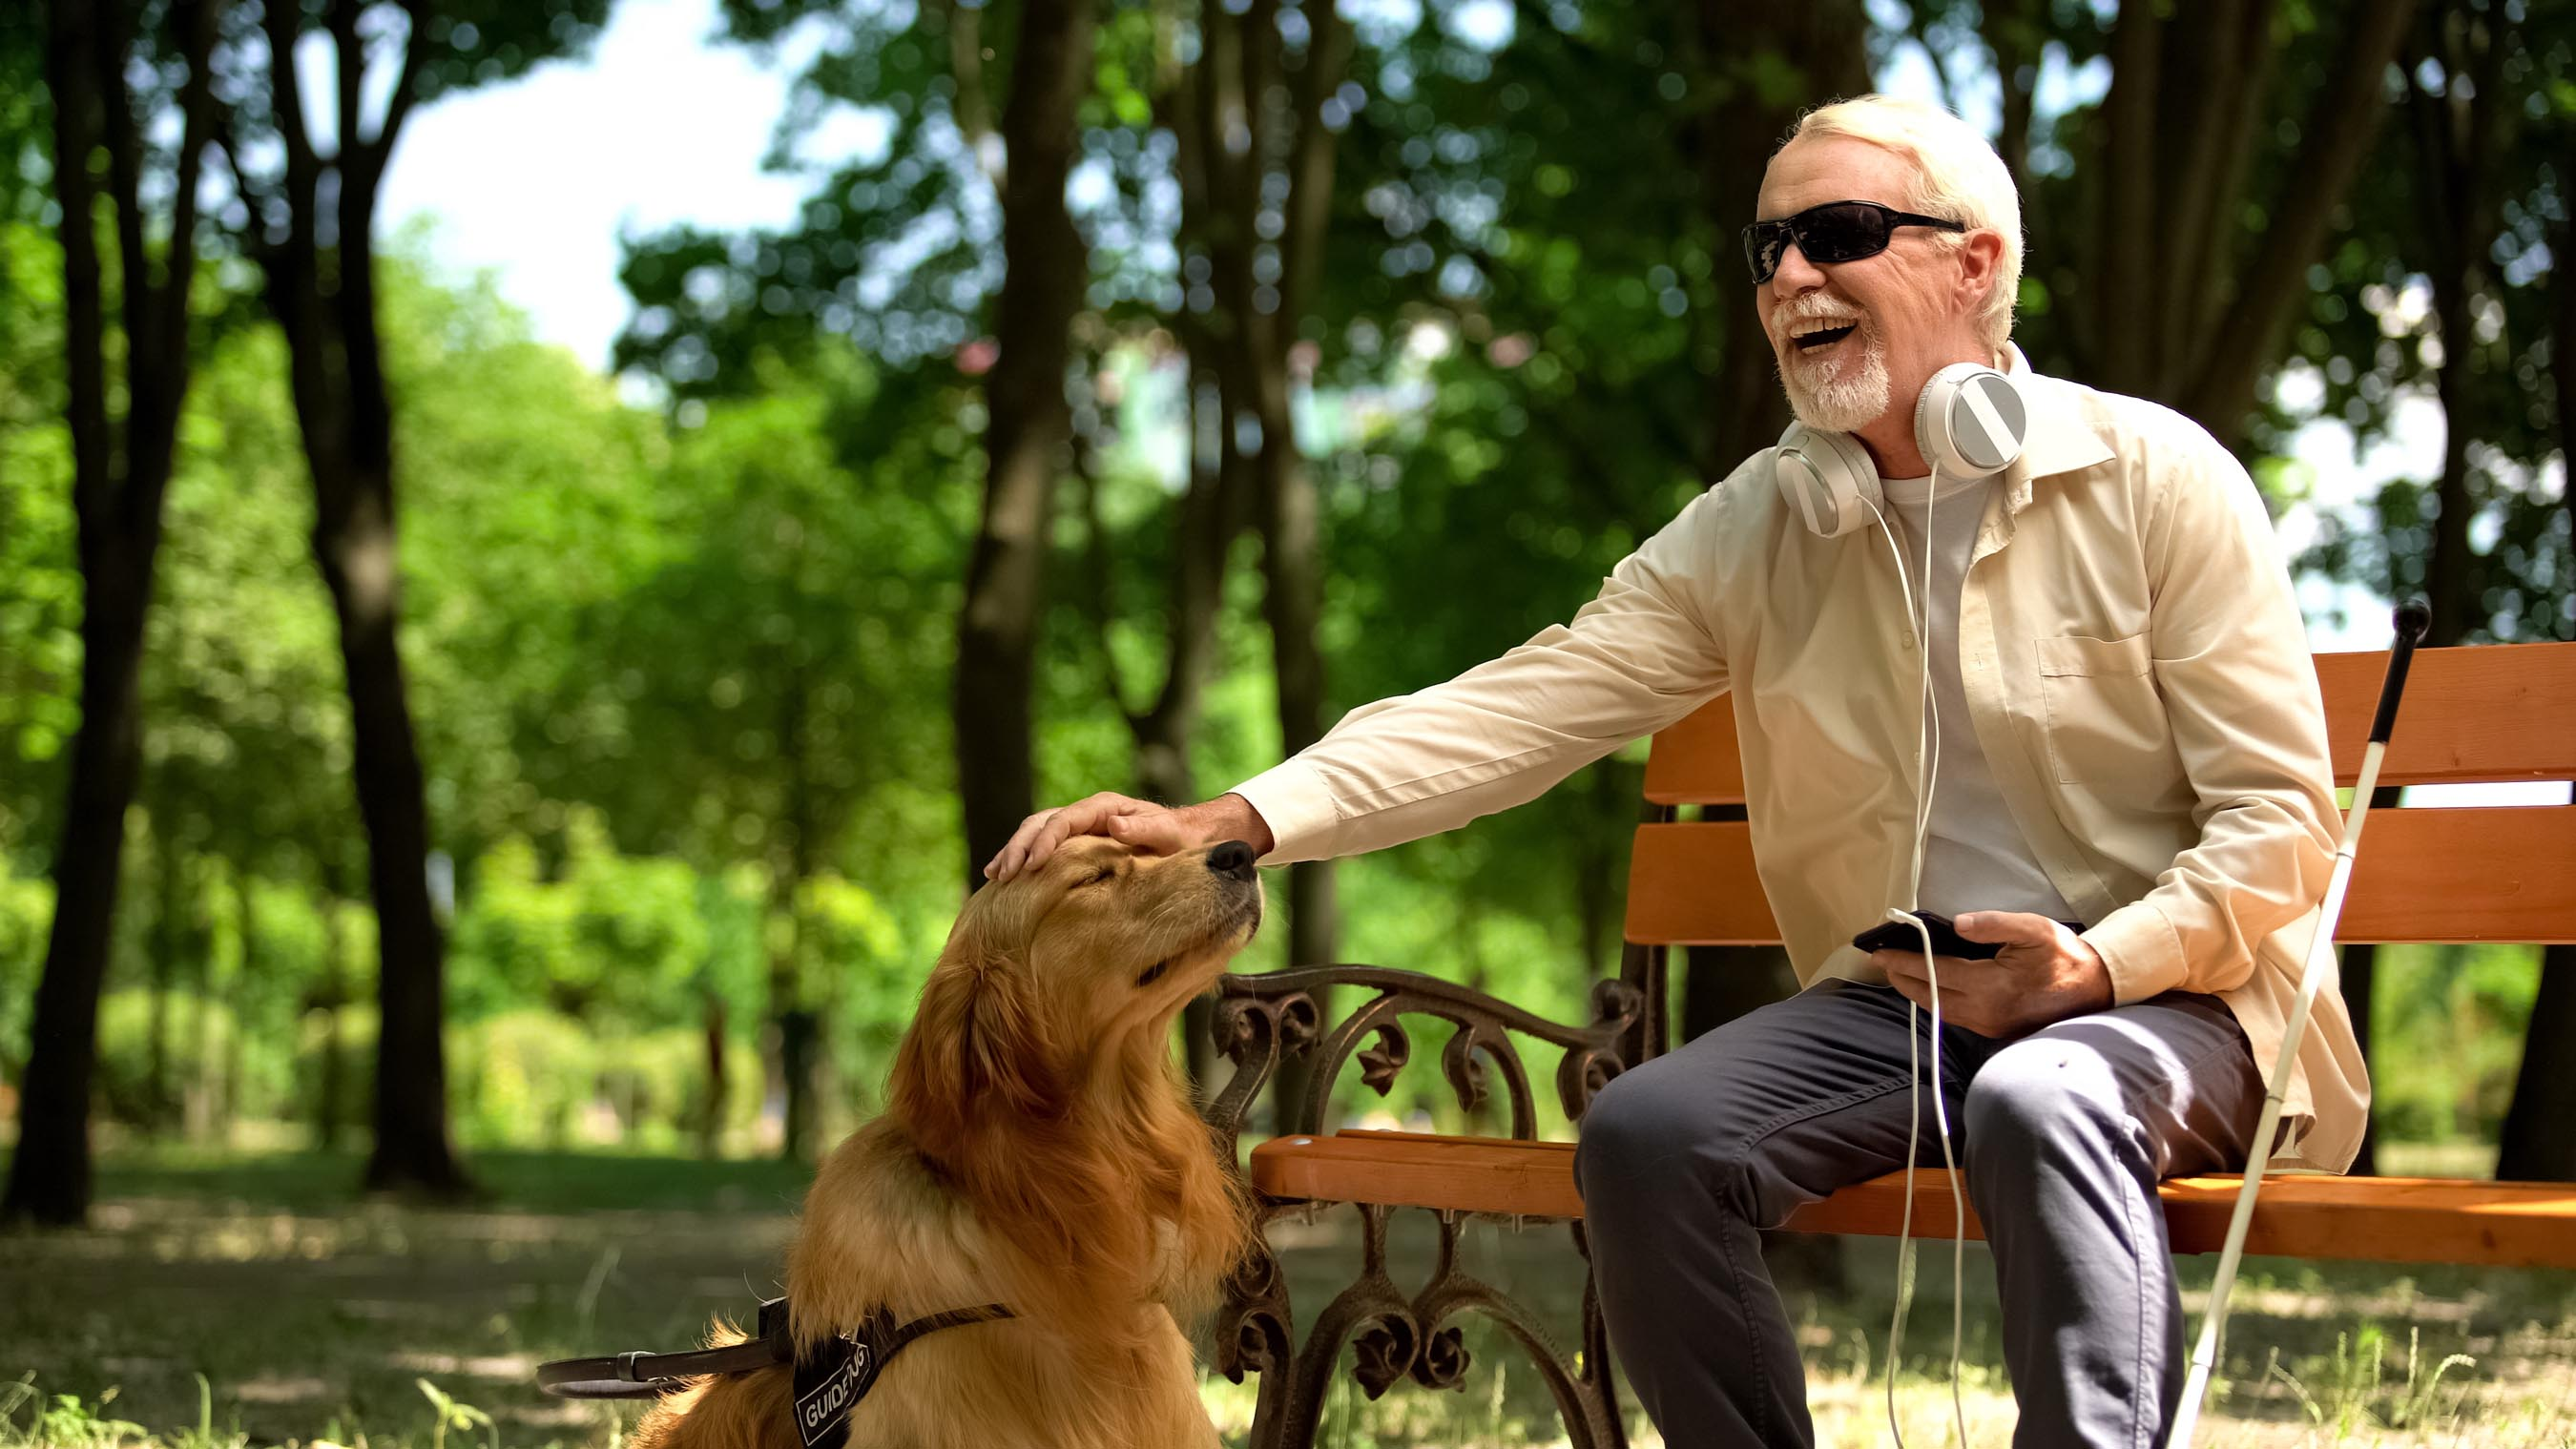 Blind white haired man wears sunglasses and headphones while petting his dog from a scenic park bench